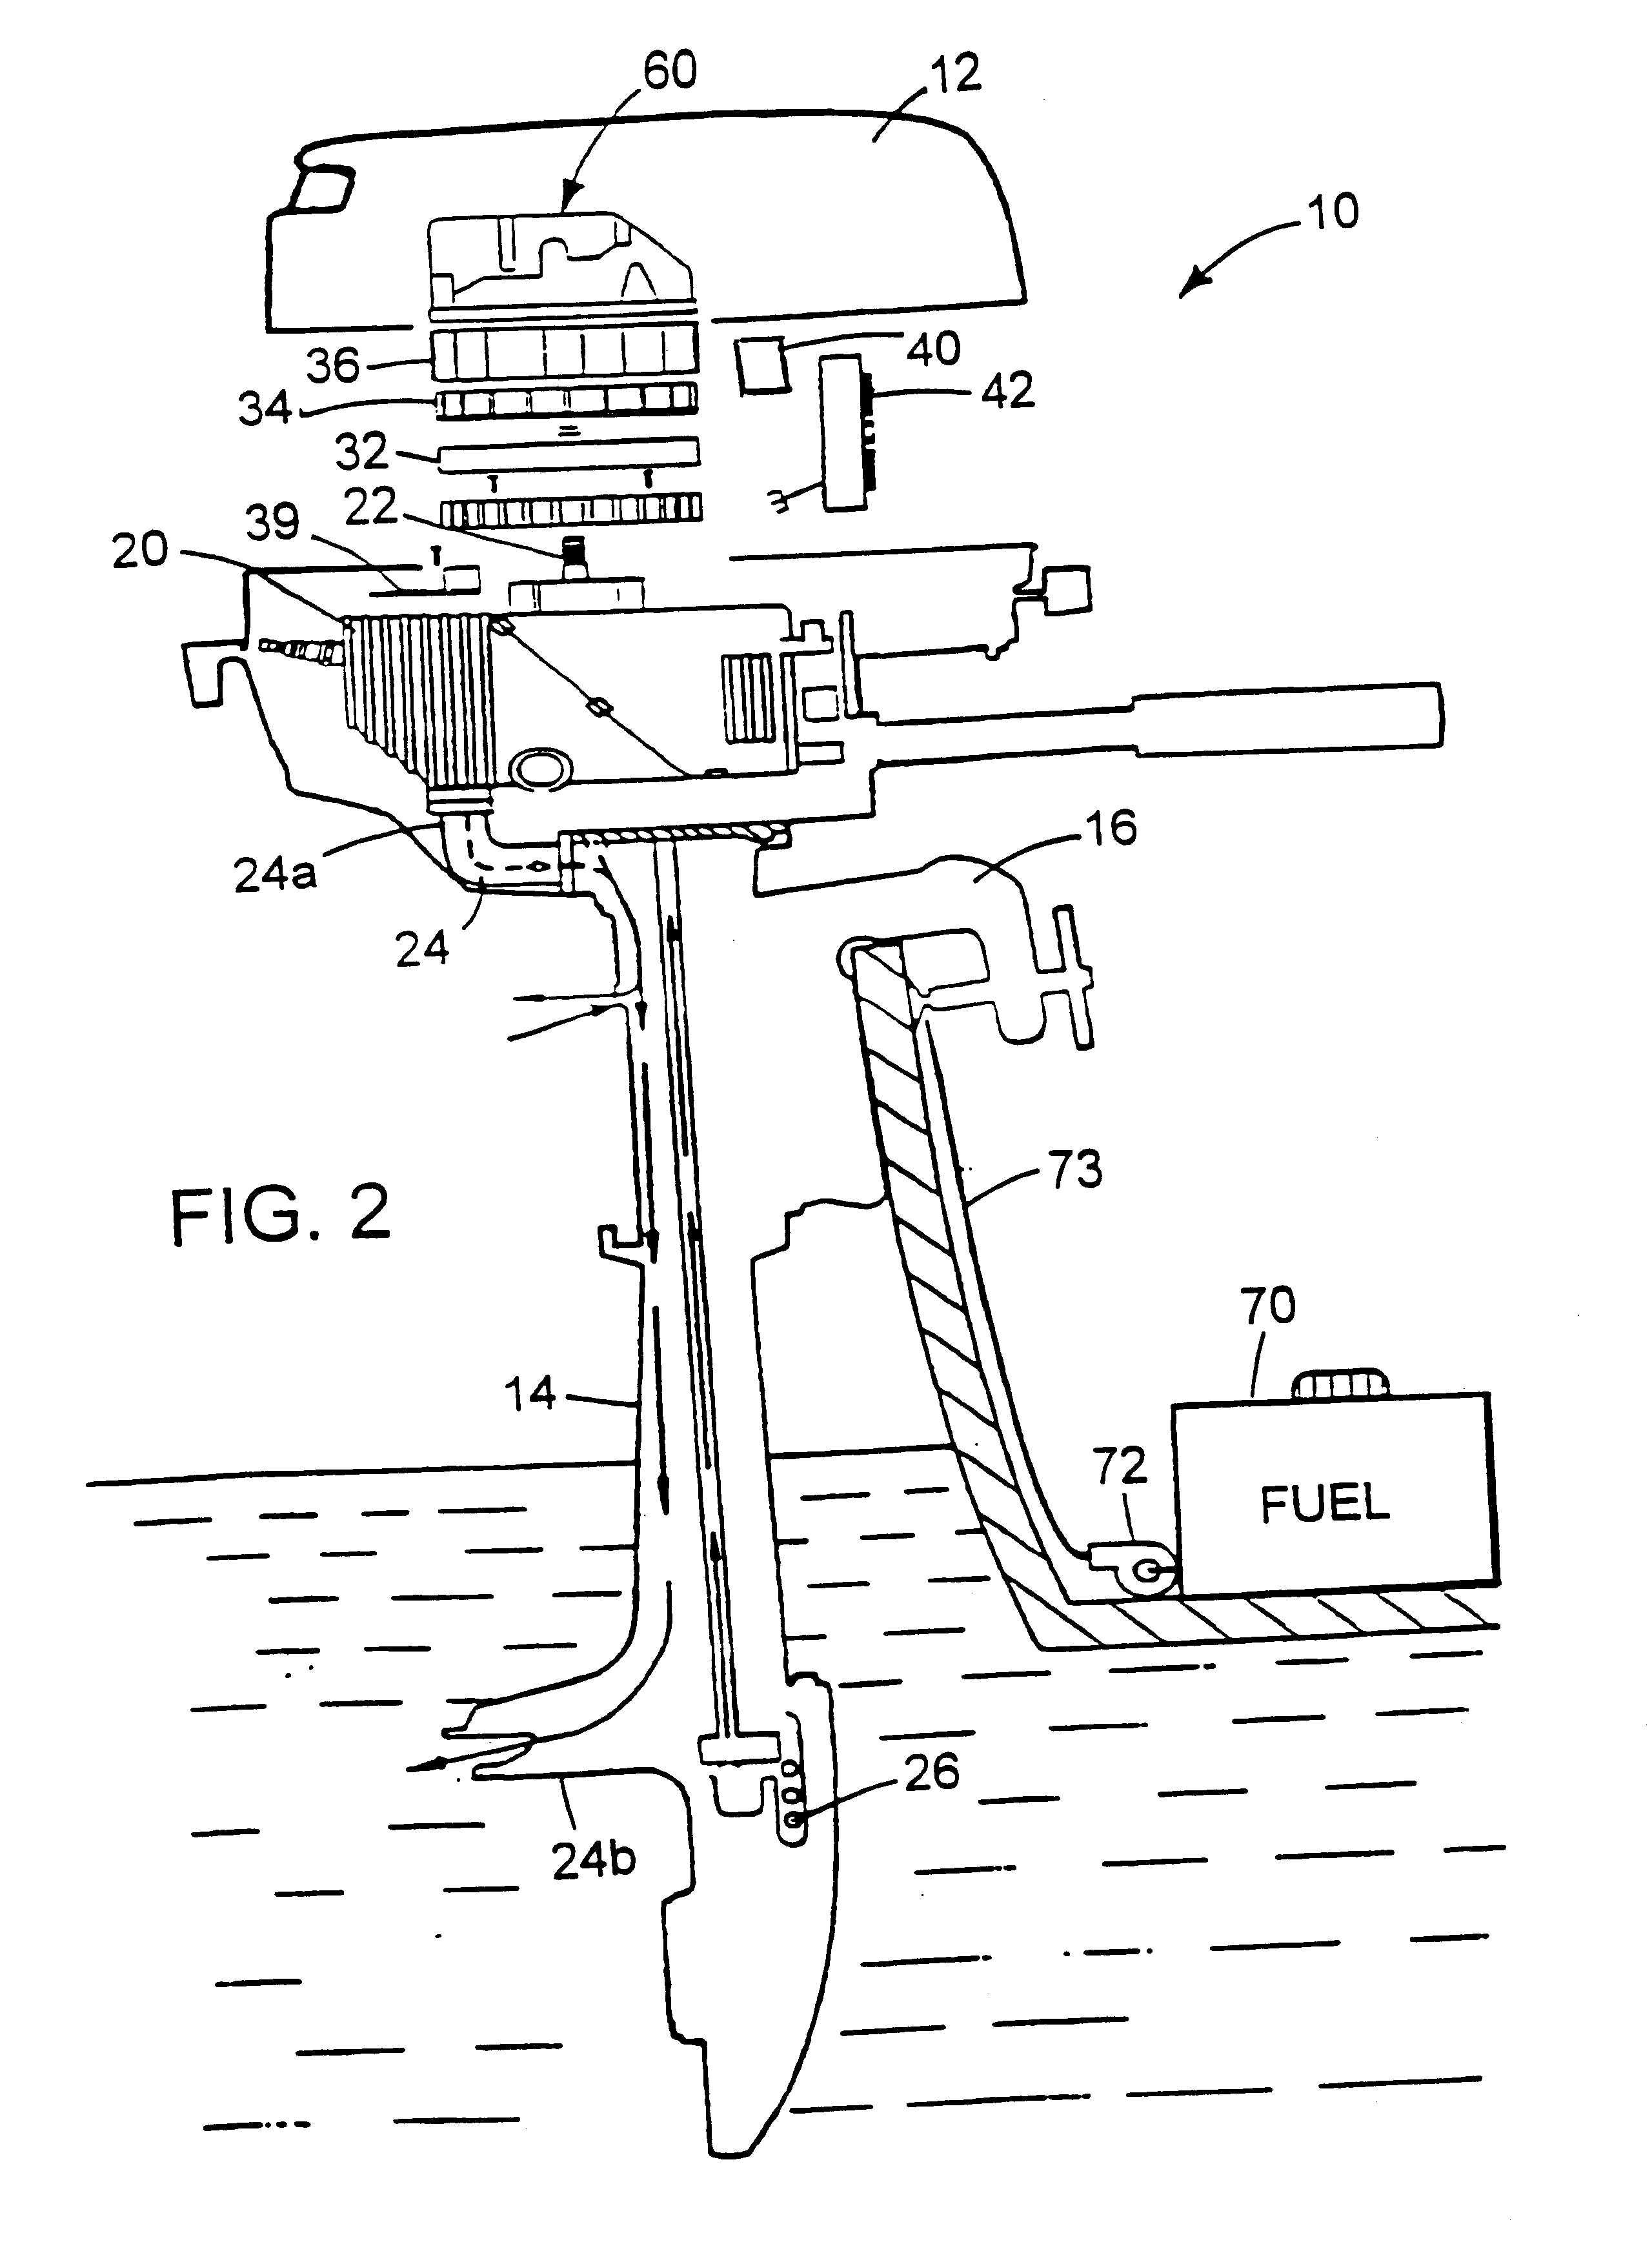 Patent US6579137 Marine Outboard Electrical Generator And US06579137 20030617 D00002 US6579137 Westerbeke Generator Wiring Diagram Stove